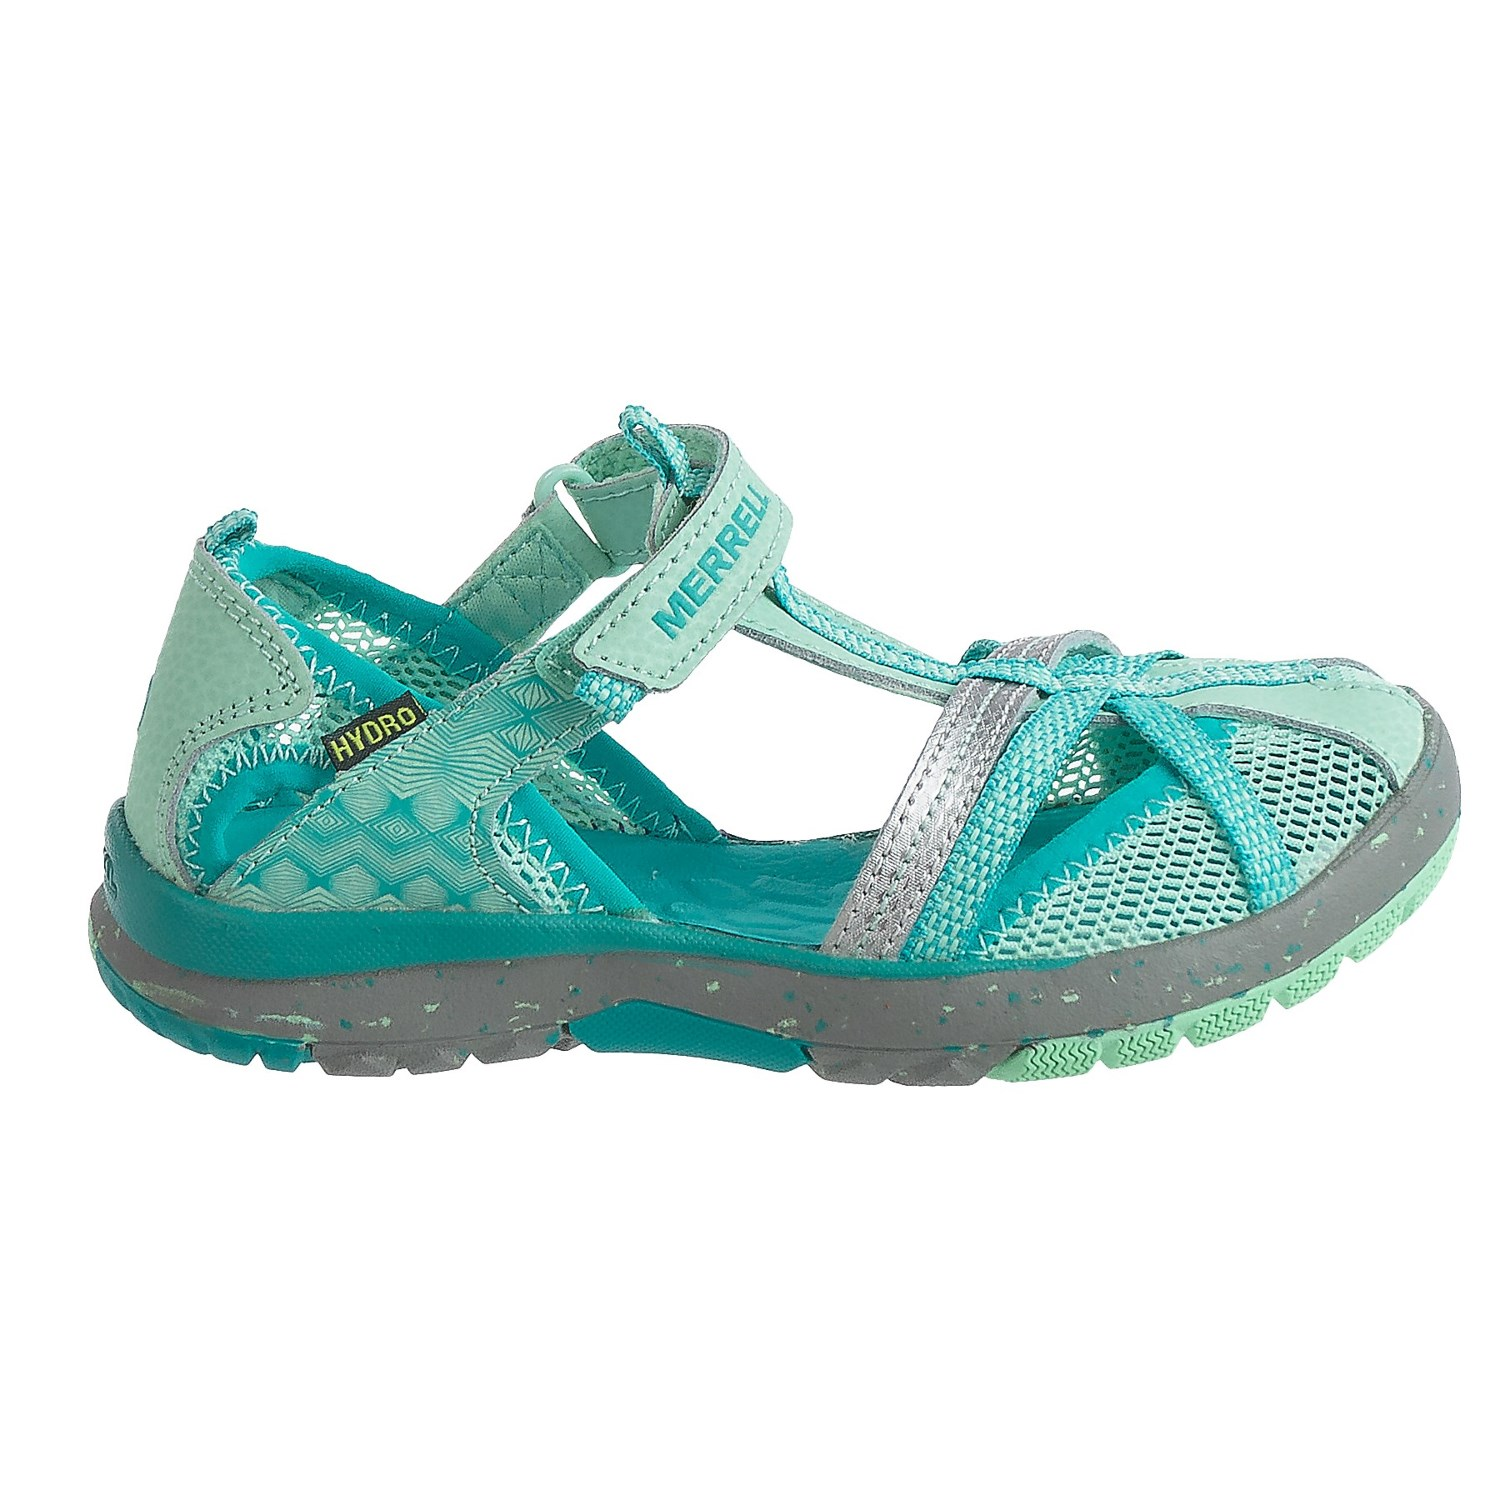 2509d254f5b1 Merrell Hydro Monarch Sandals (For Little and Big Girls) - Save 50%